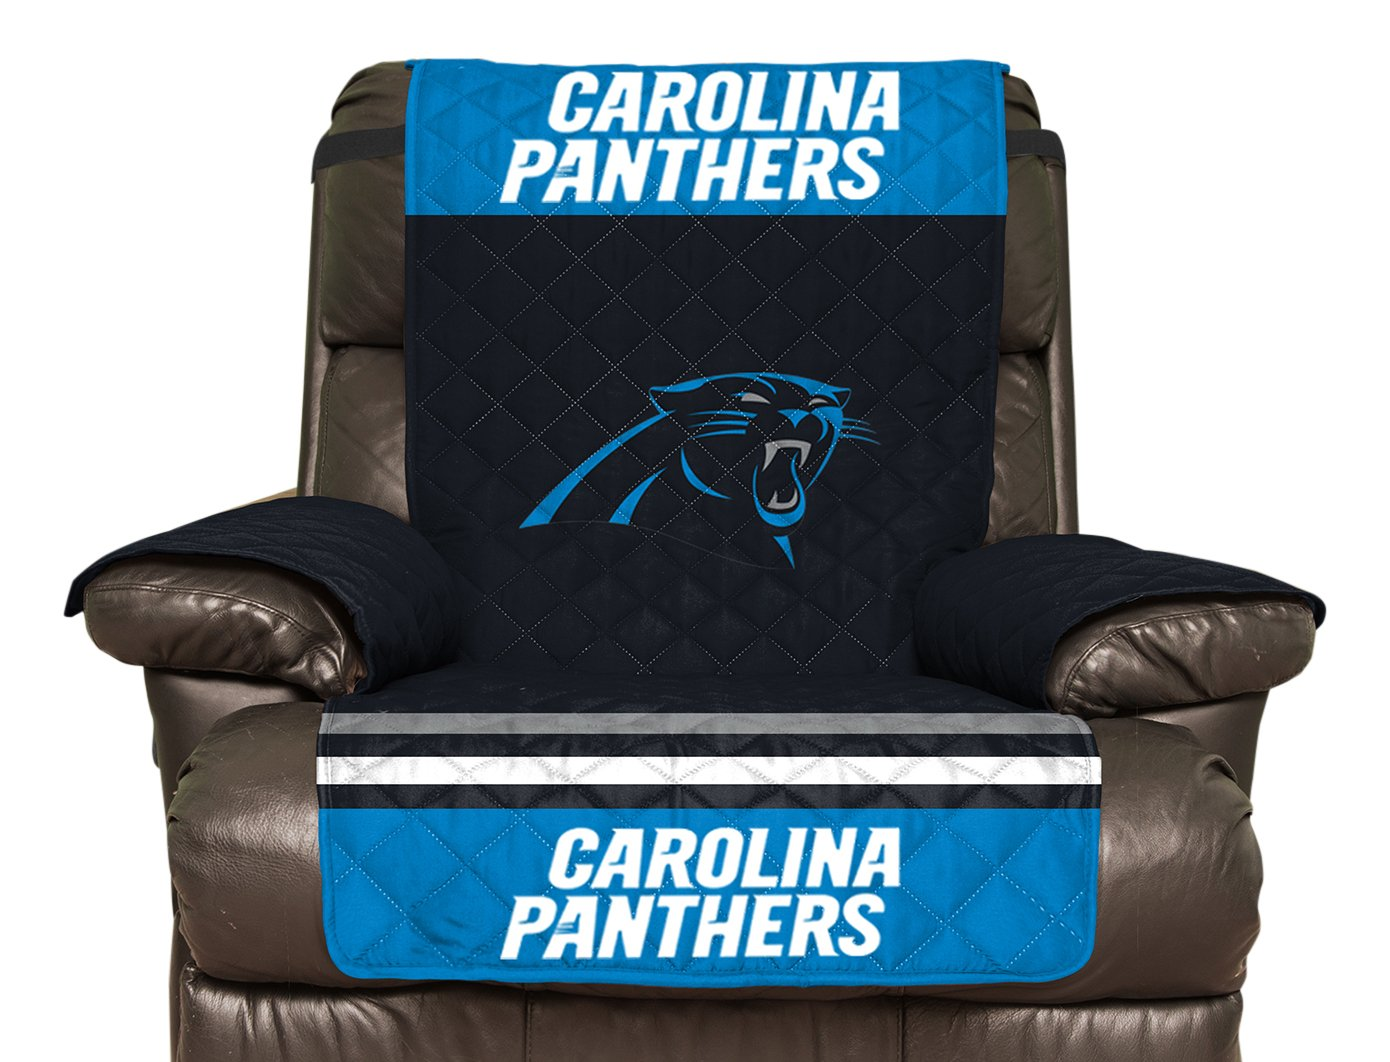 Pegasus Sports NFL Carolina Panthers Recliner Reversible Furniture Protector with Elastic Straps, 80-inches by 65-inches Pegasus - Sports NFLPANTHERS-4R